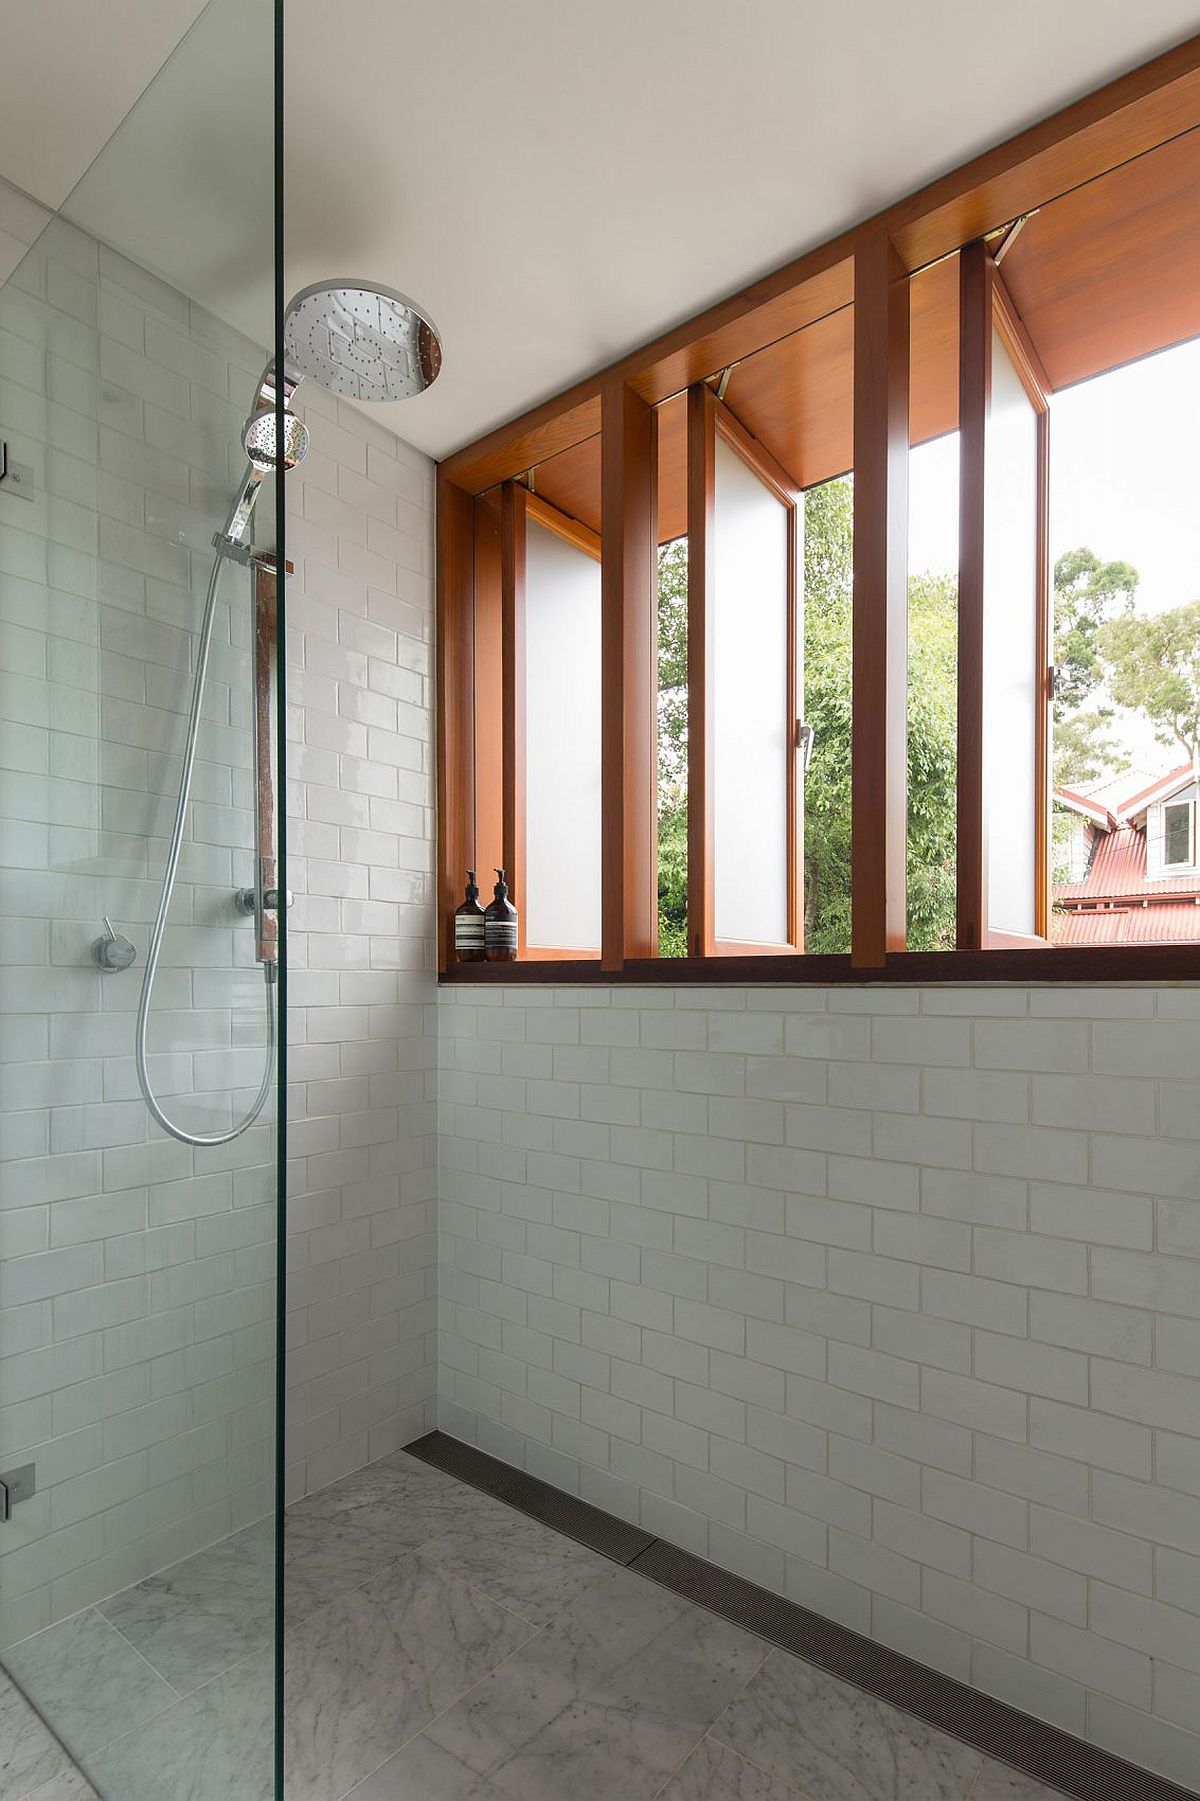 Swiveling windows provide the modern bathroom with necessary ventilation